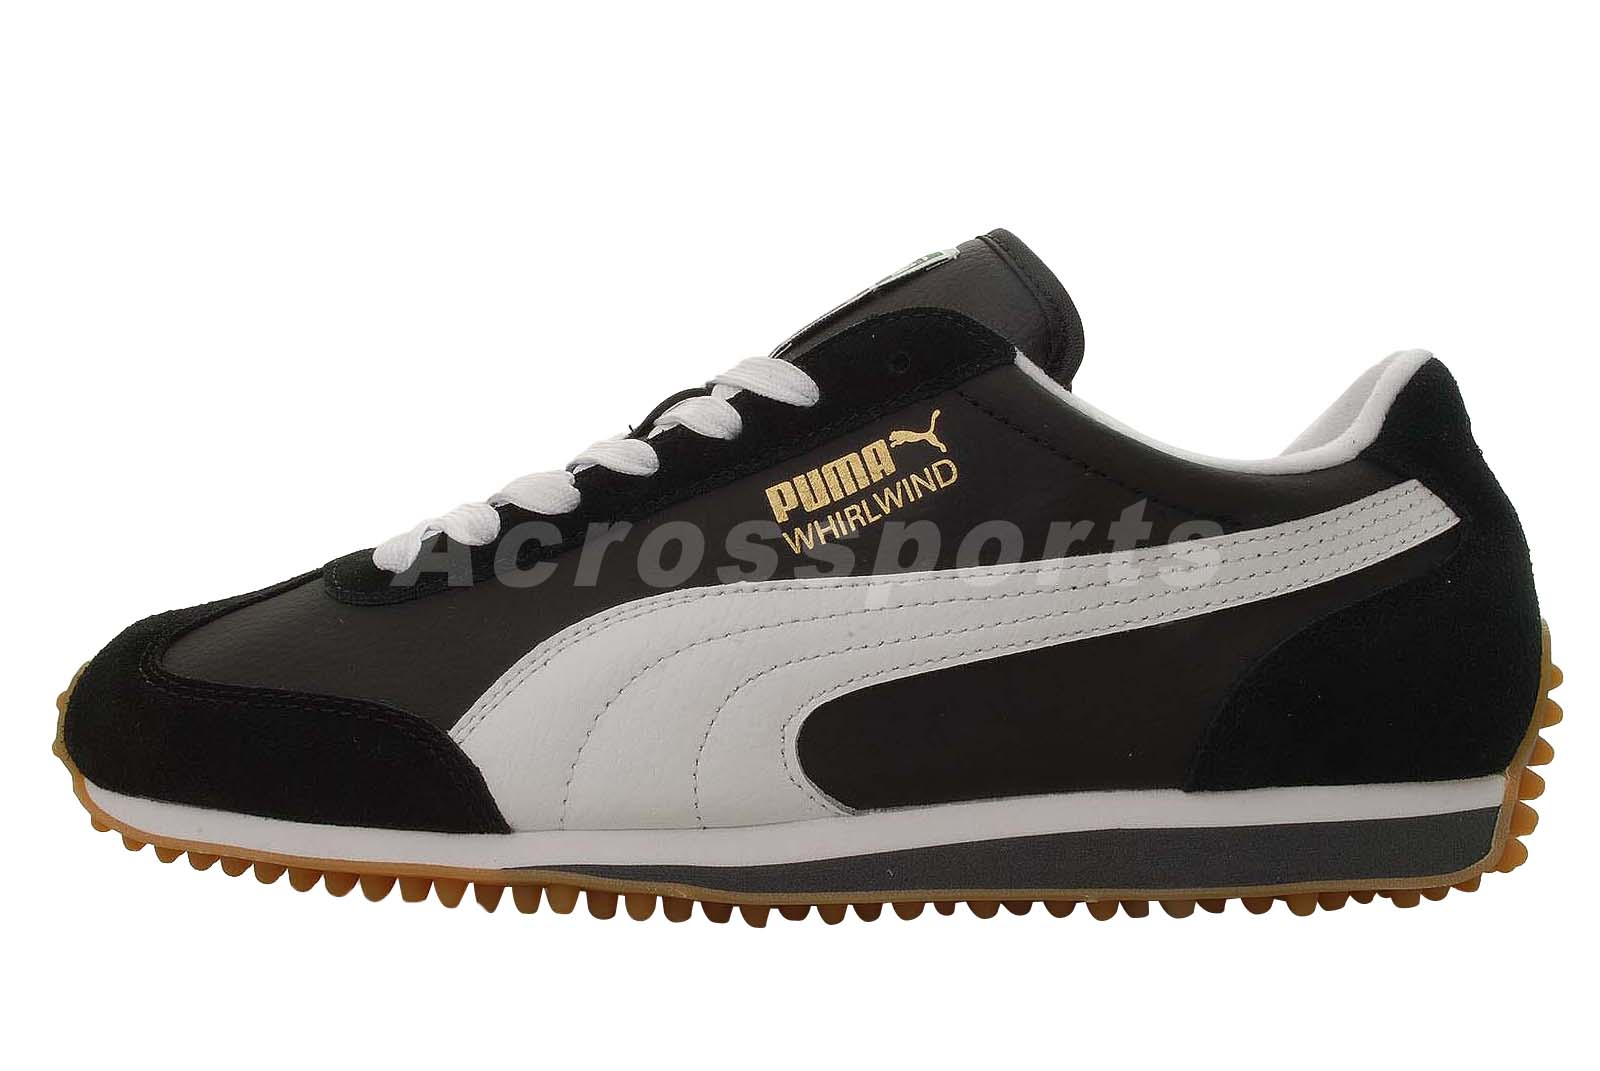 puma whirlwind classic leather 2013 retro running shoes